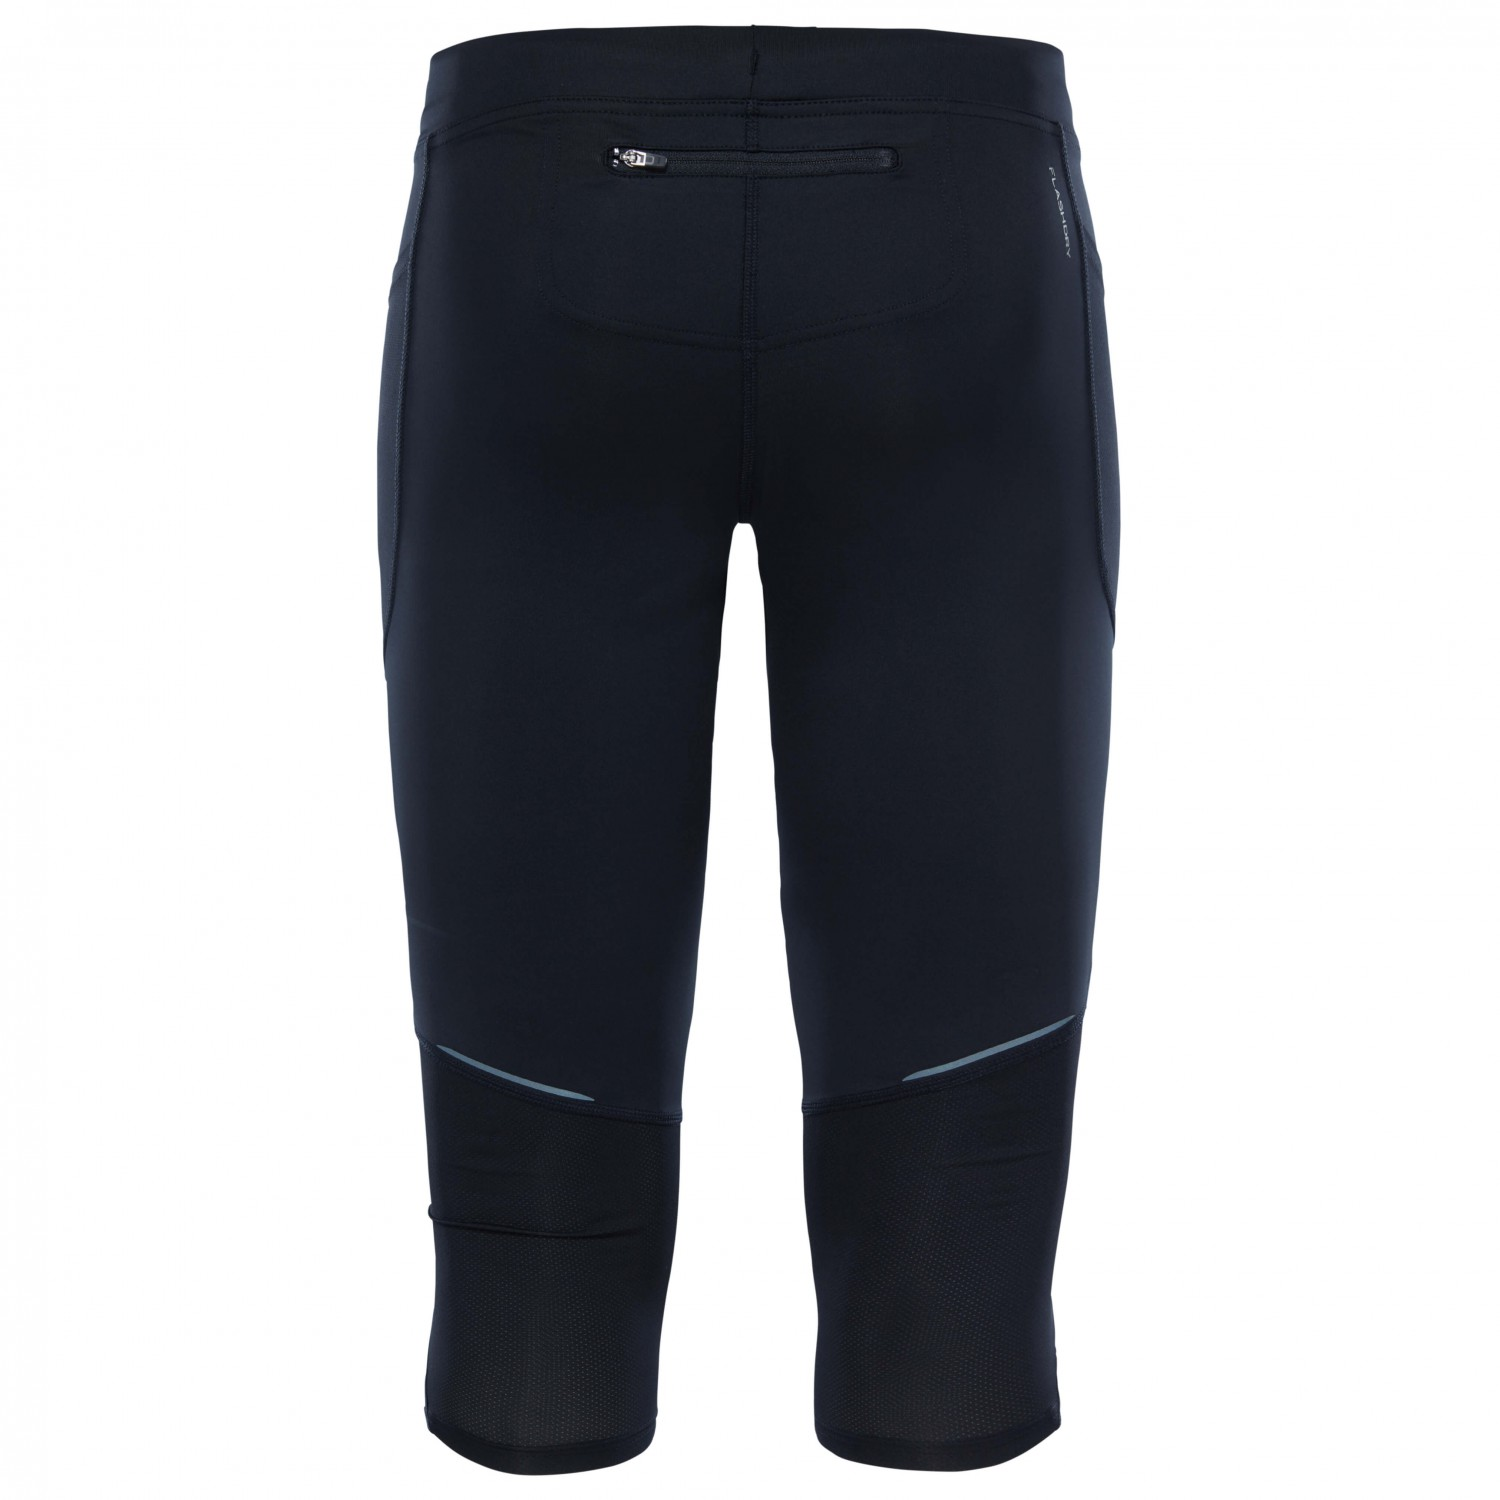 The North Face Ambition 3 4 Tight - 3 4 Running Tights Men s  96ac68b8c